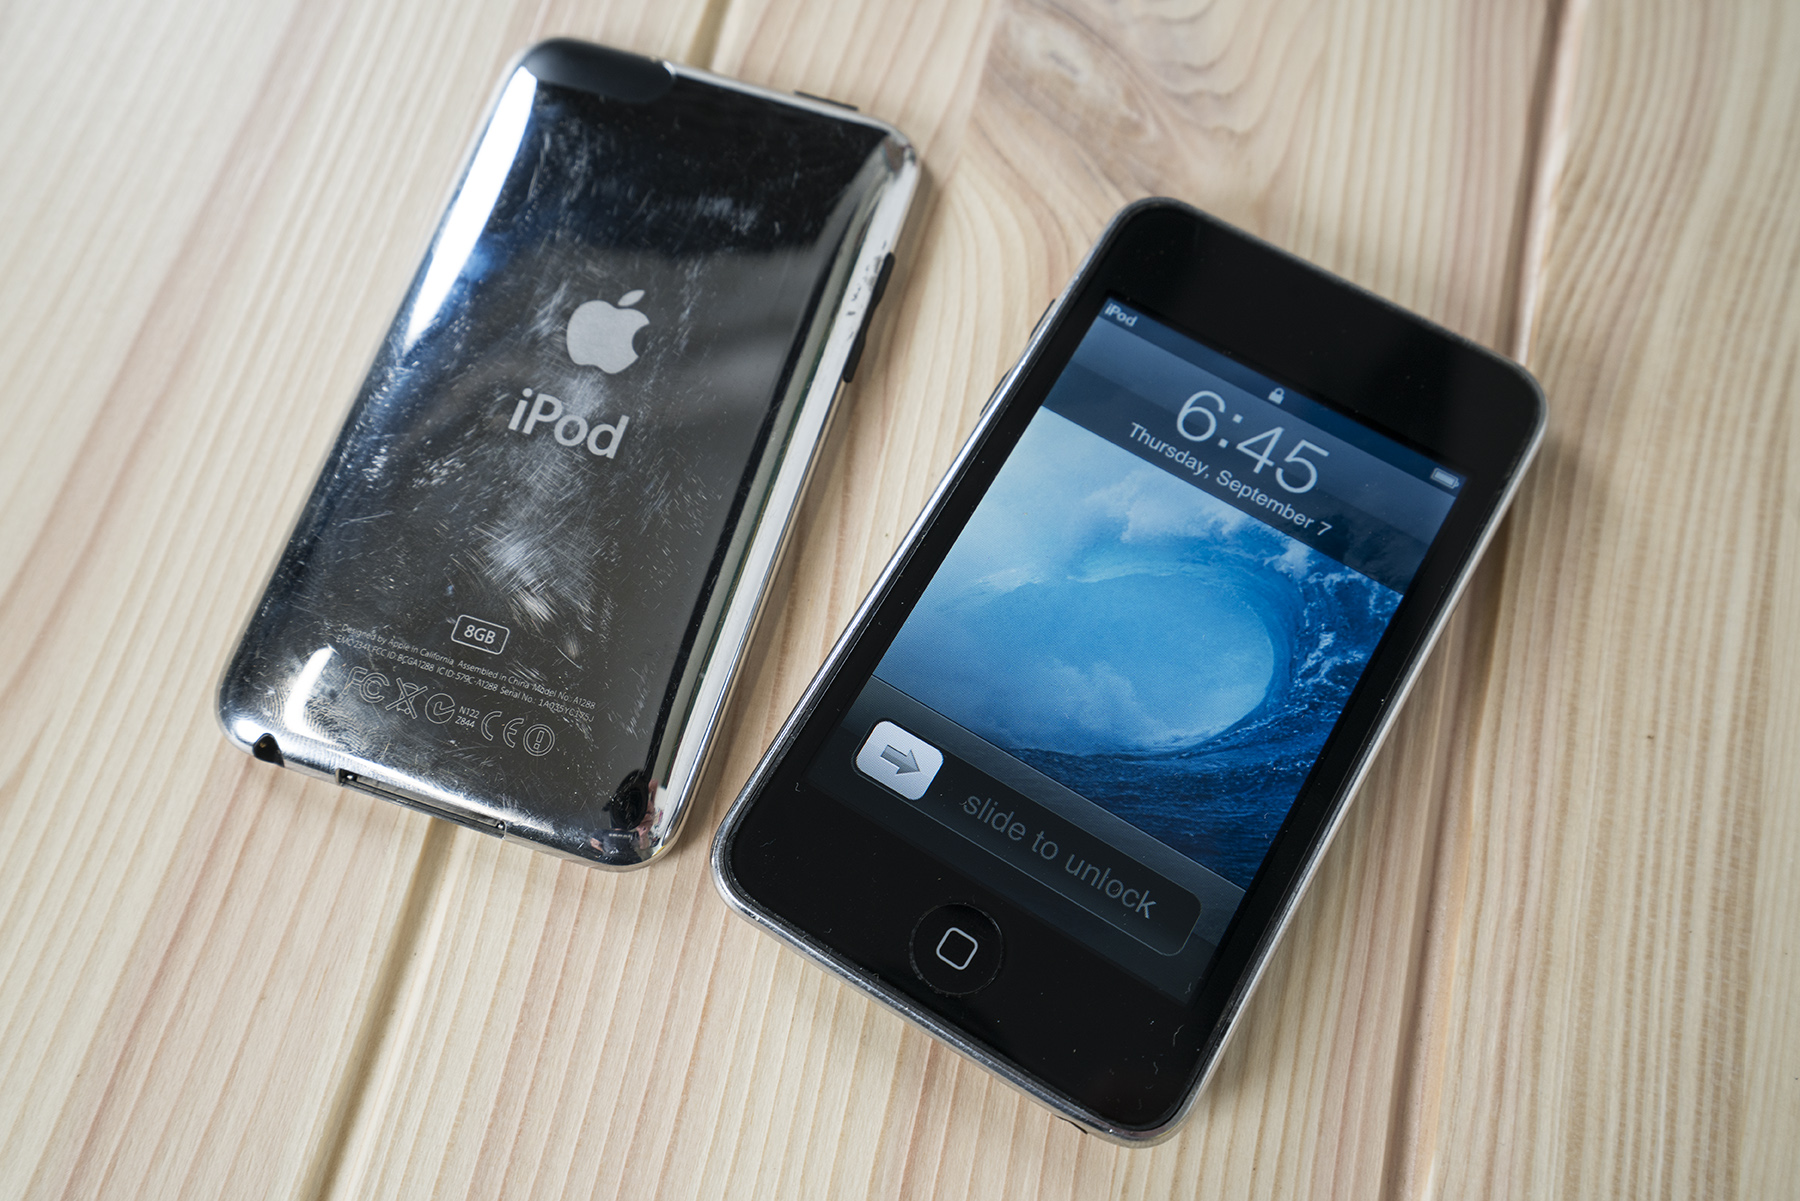 Gen 2 and 3 iPod touch